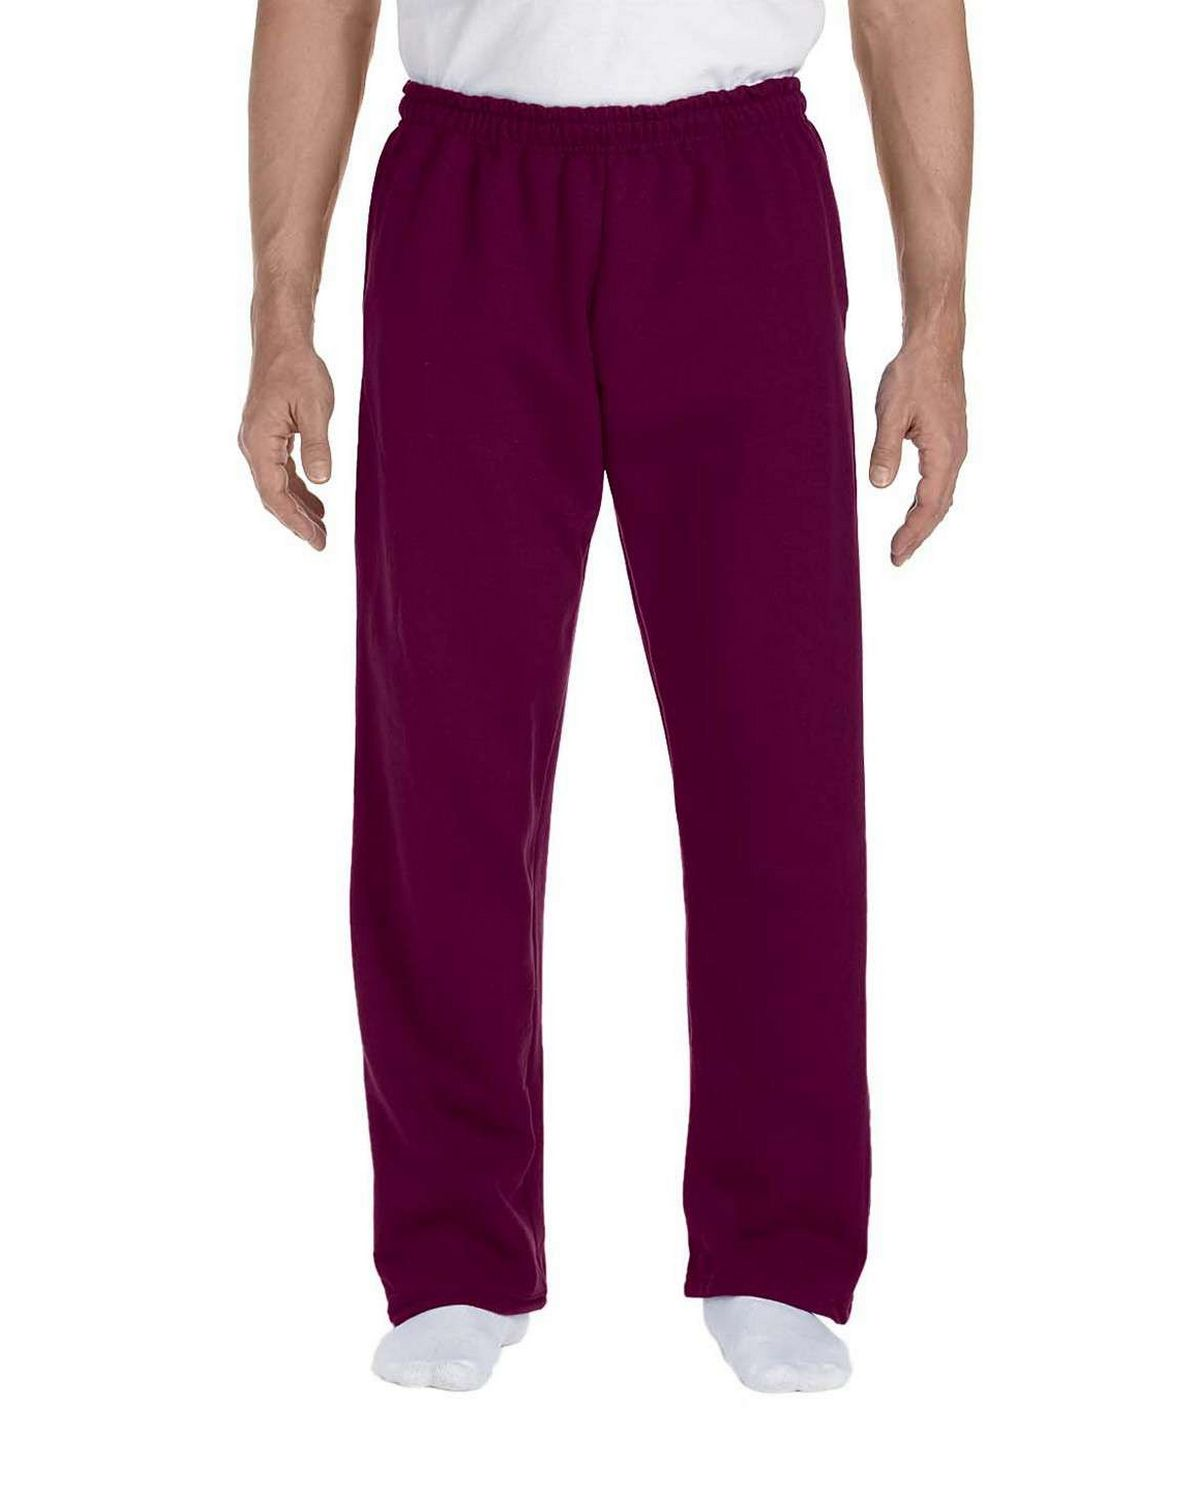 Gildan 12300 Open Bottom Sweatpants - Maroon - L 12300